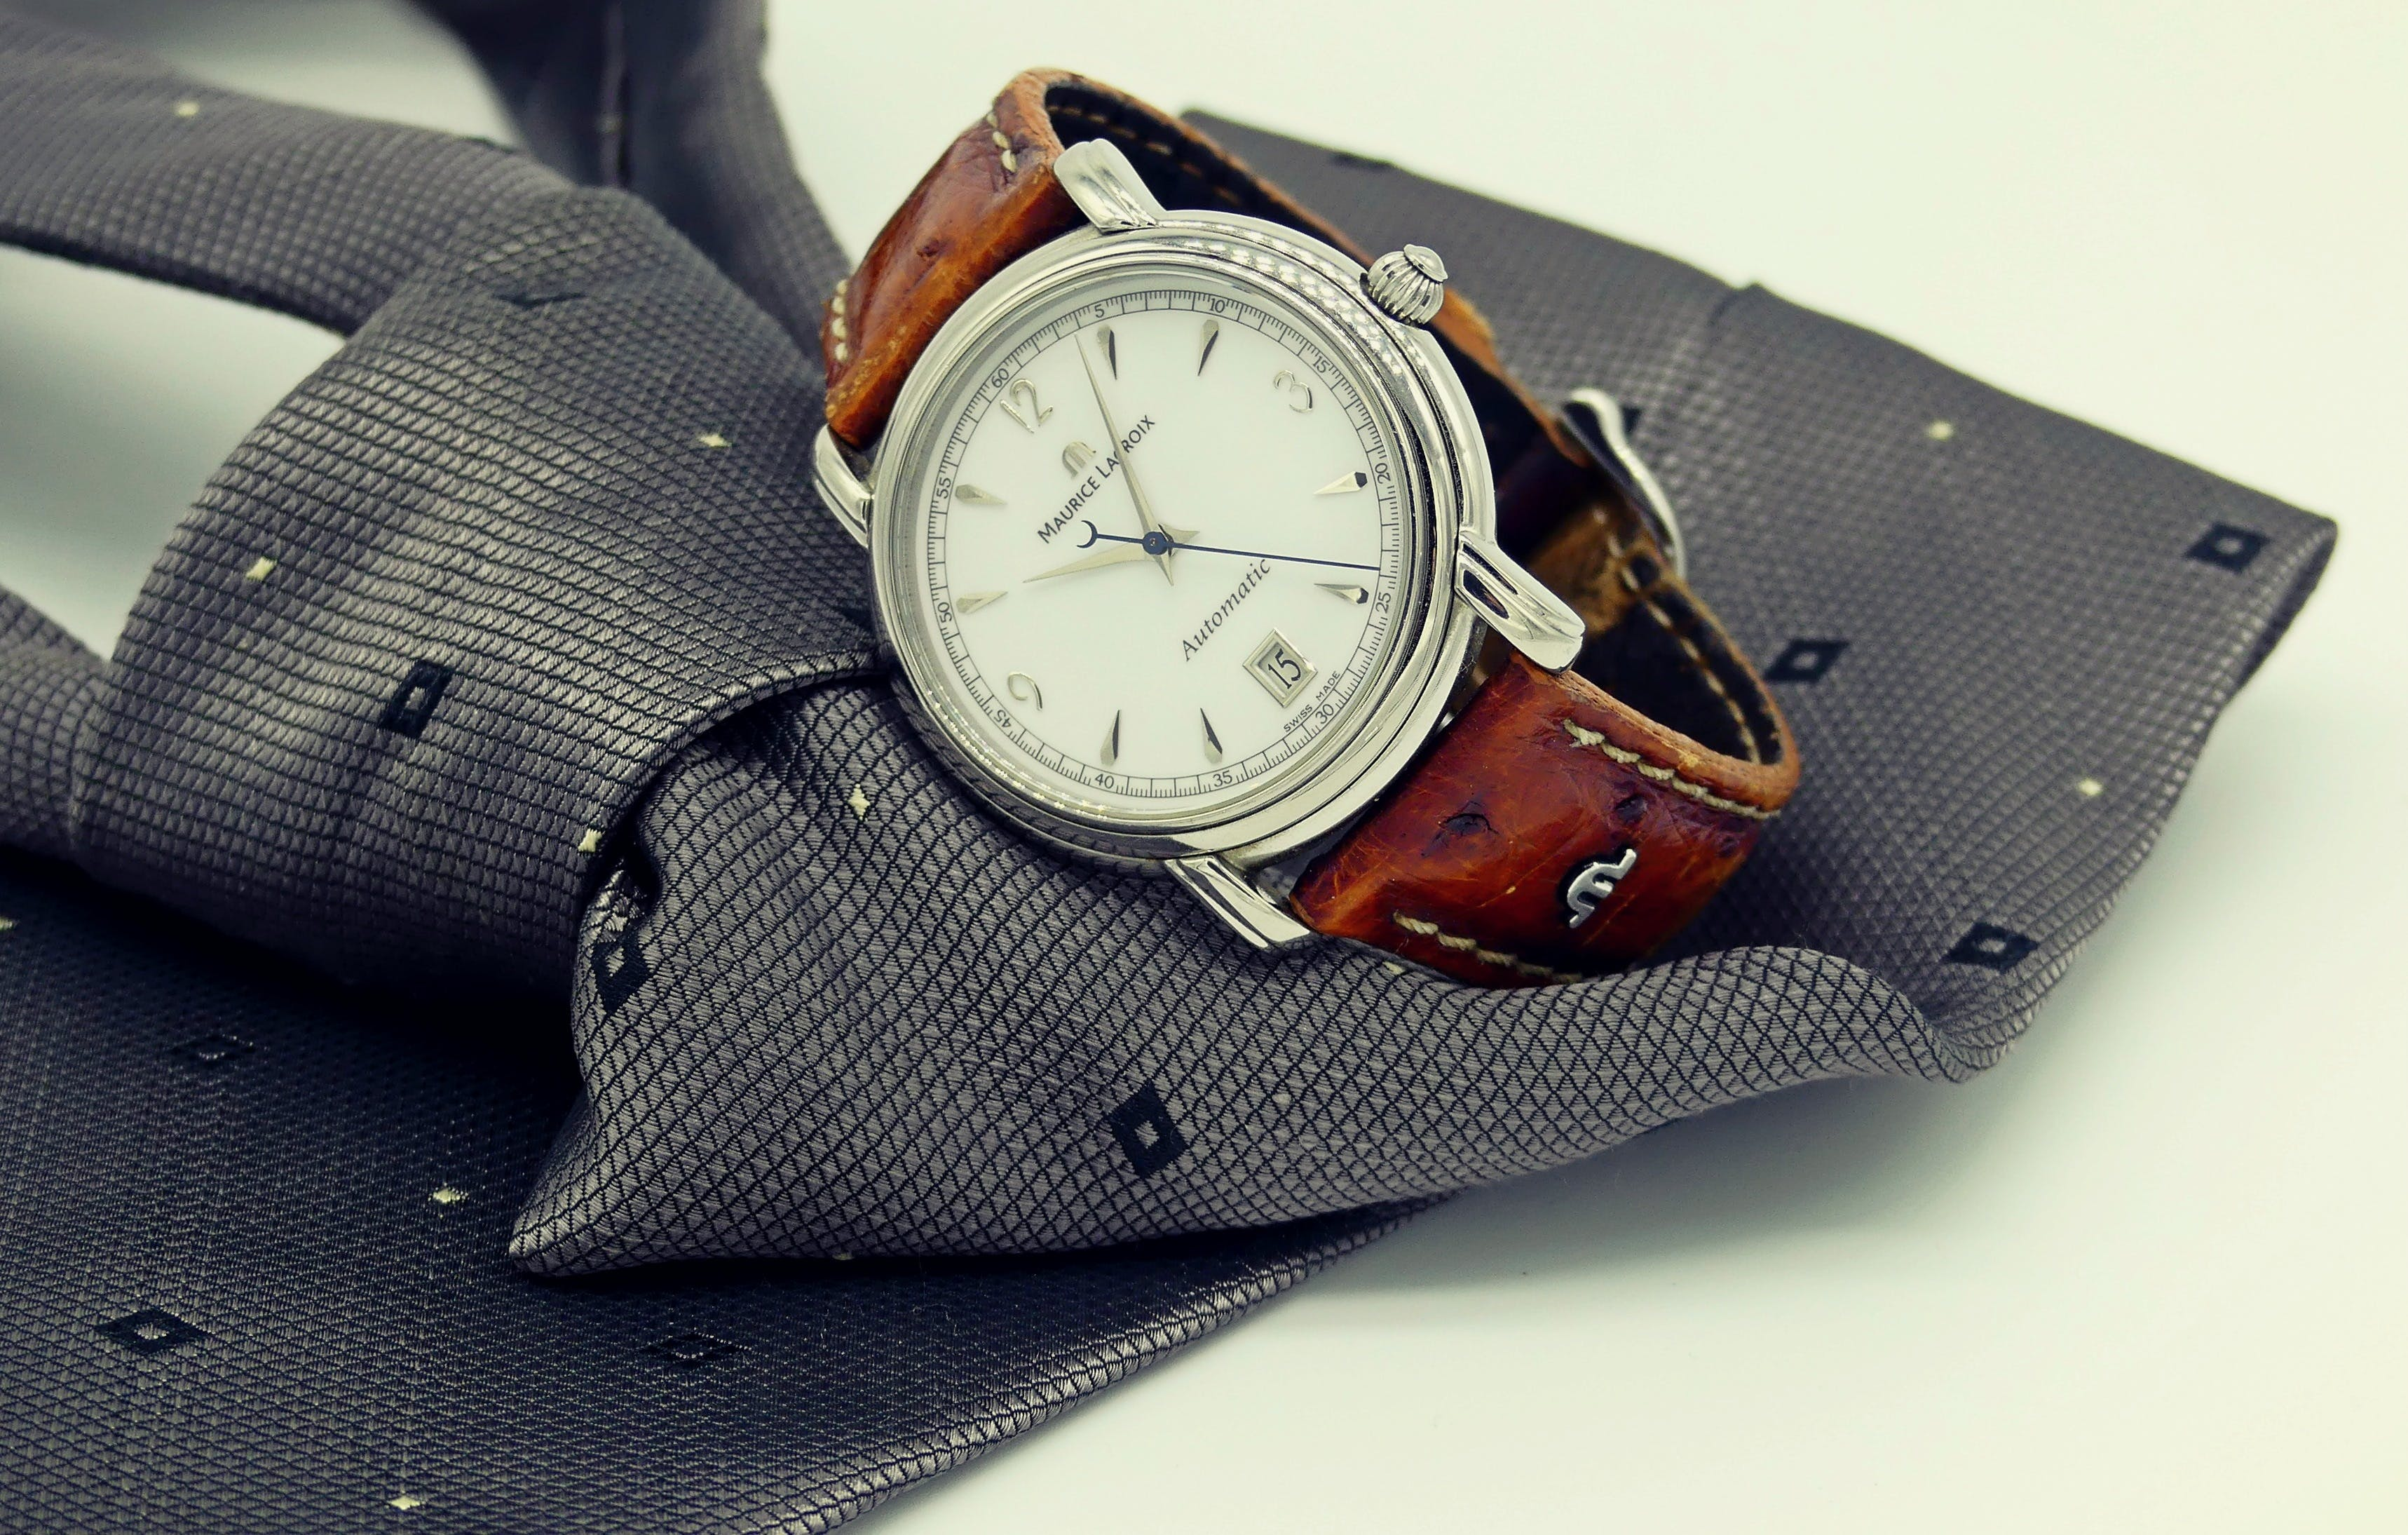 Round Silver-colored Analog Watch With Brown Leather Strap